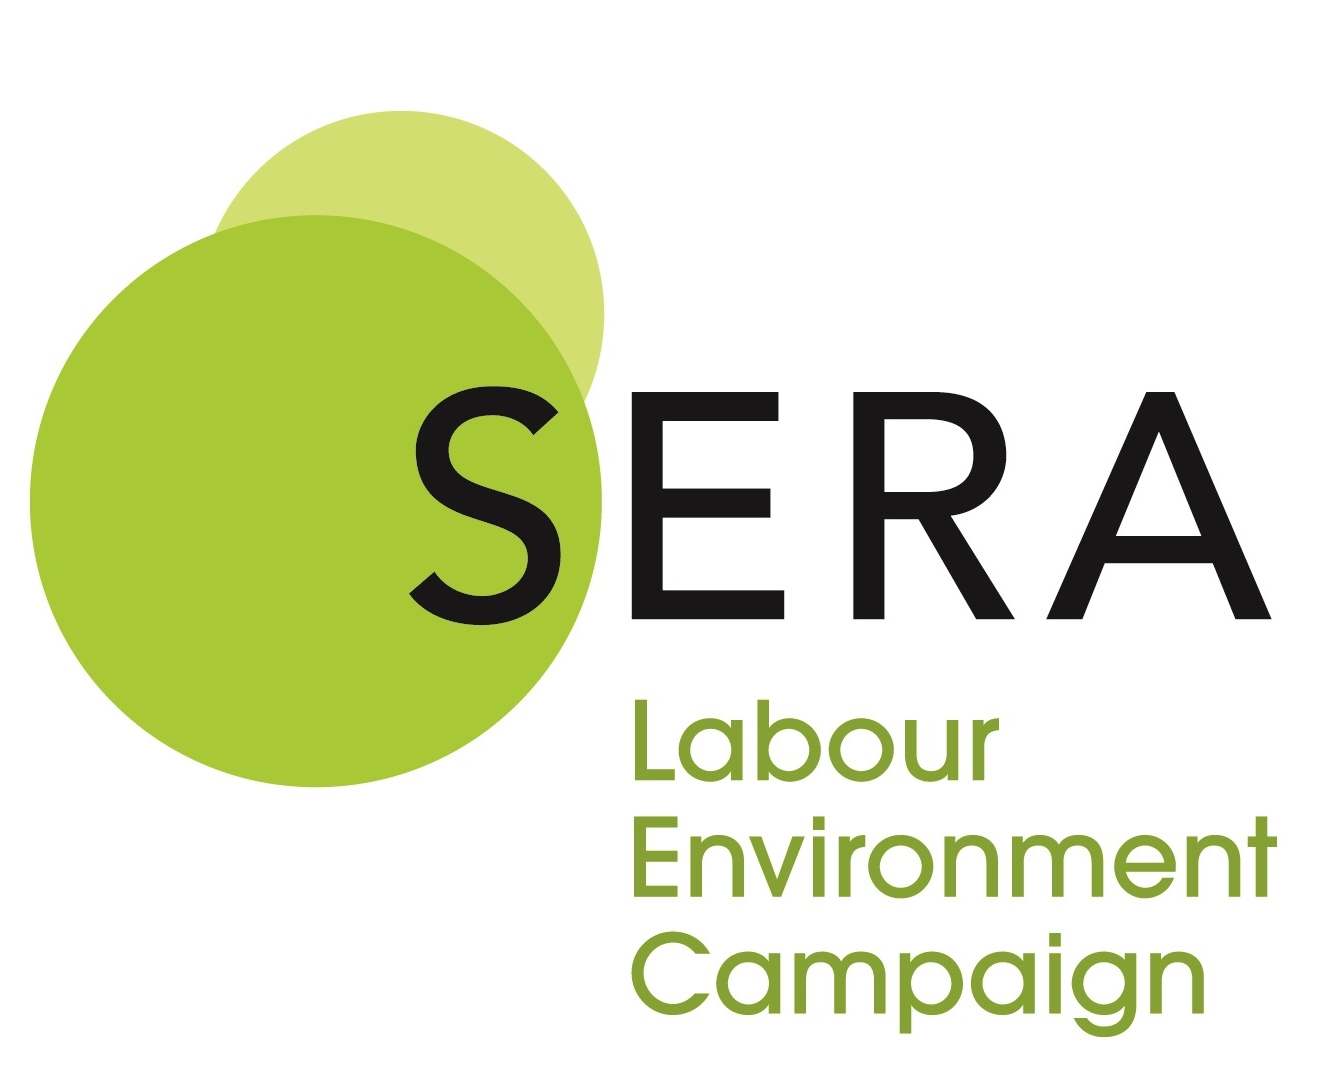 sera-logo-background_-_Copy.jpg